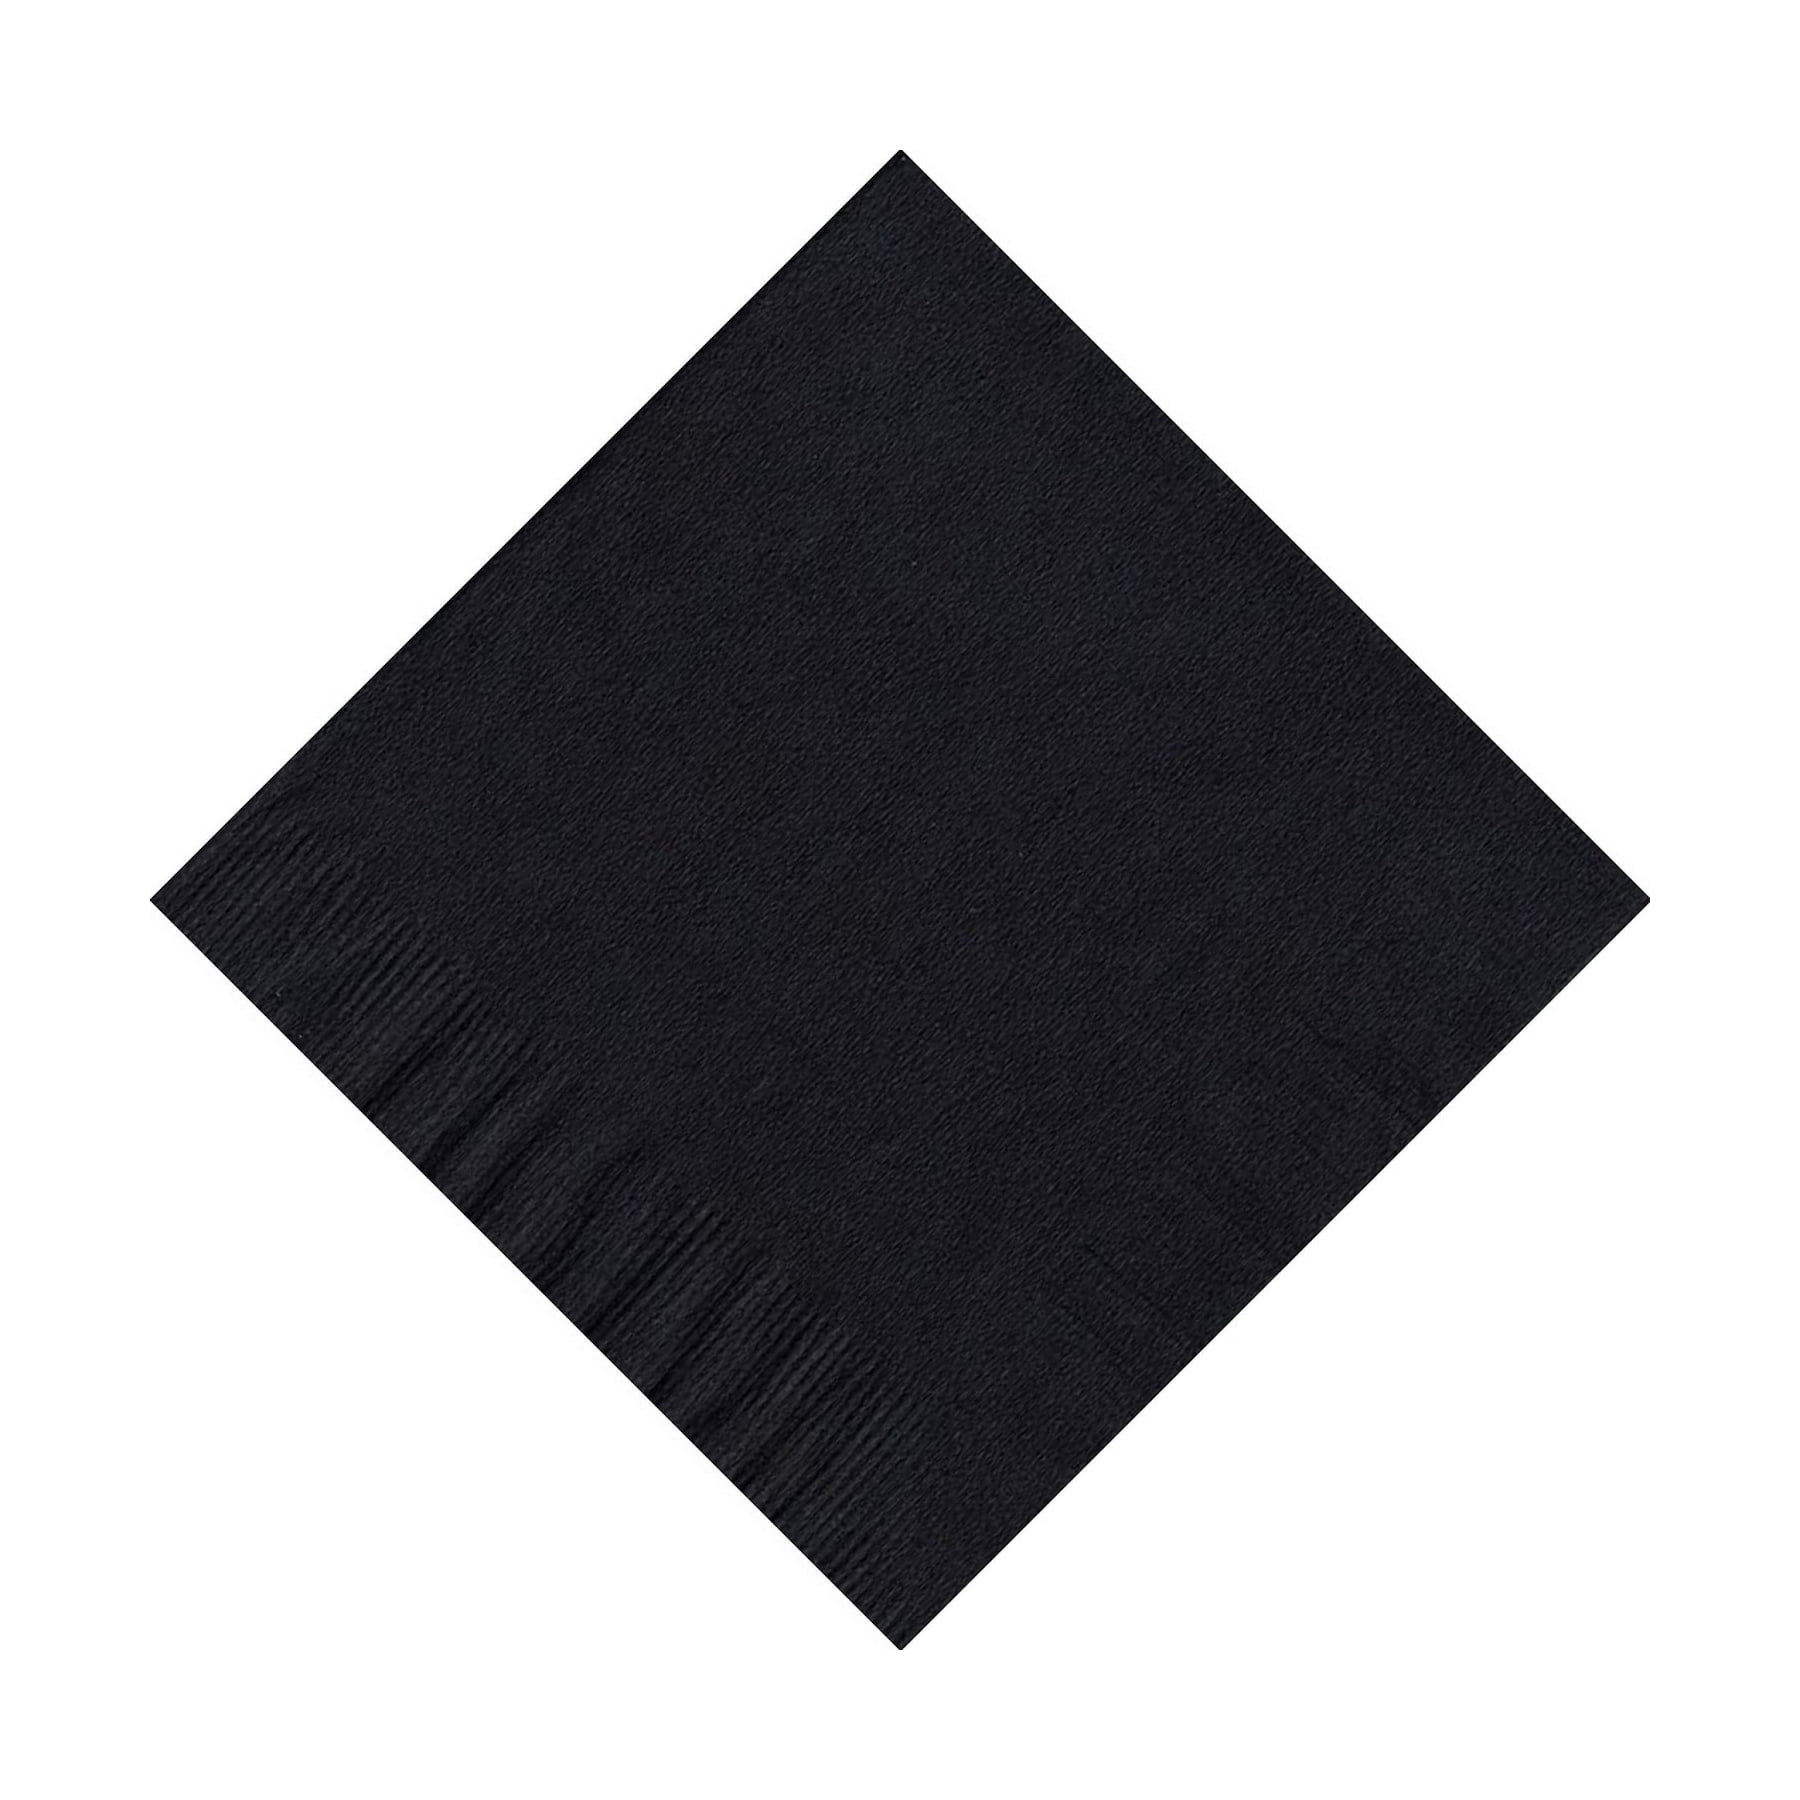 200 (4 Pks of 50) 2 Ply Plain Solid Colors Beverage Cocktail Napkins Paper Black by CREATIVE CONVERTING